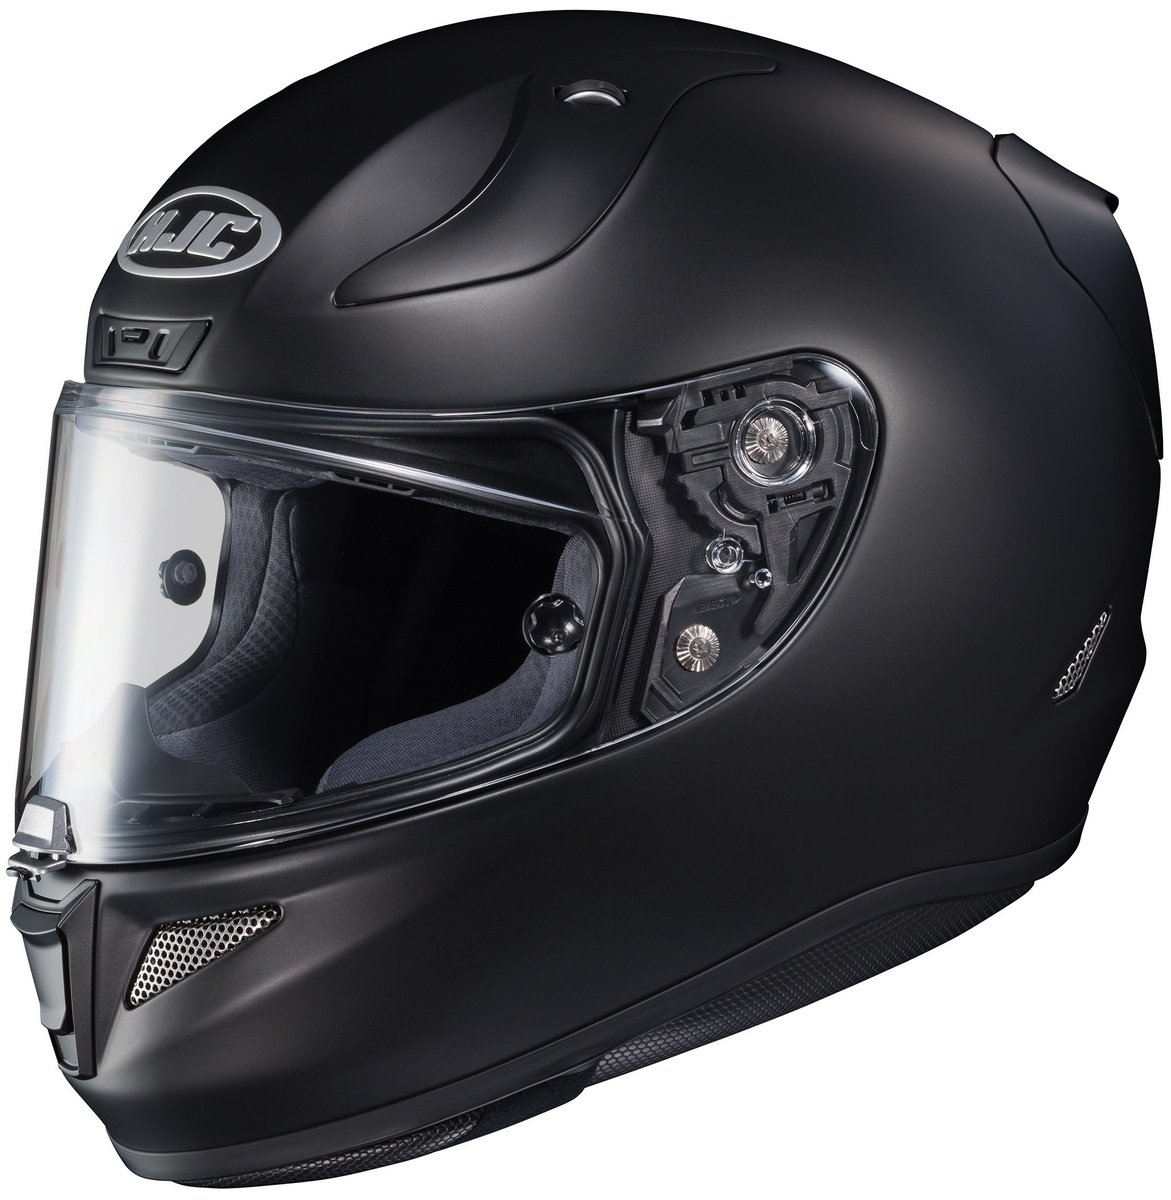 HJC RPHA 11 Pro Mens Motorcycle Helmets - Matte Black - Large by HJC Helmets